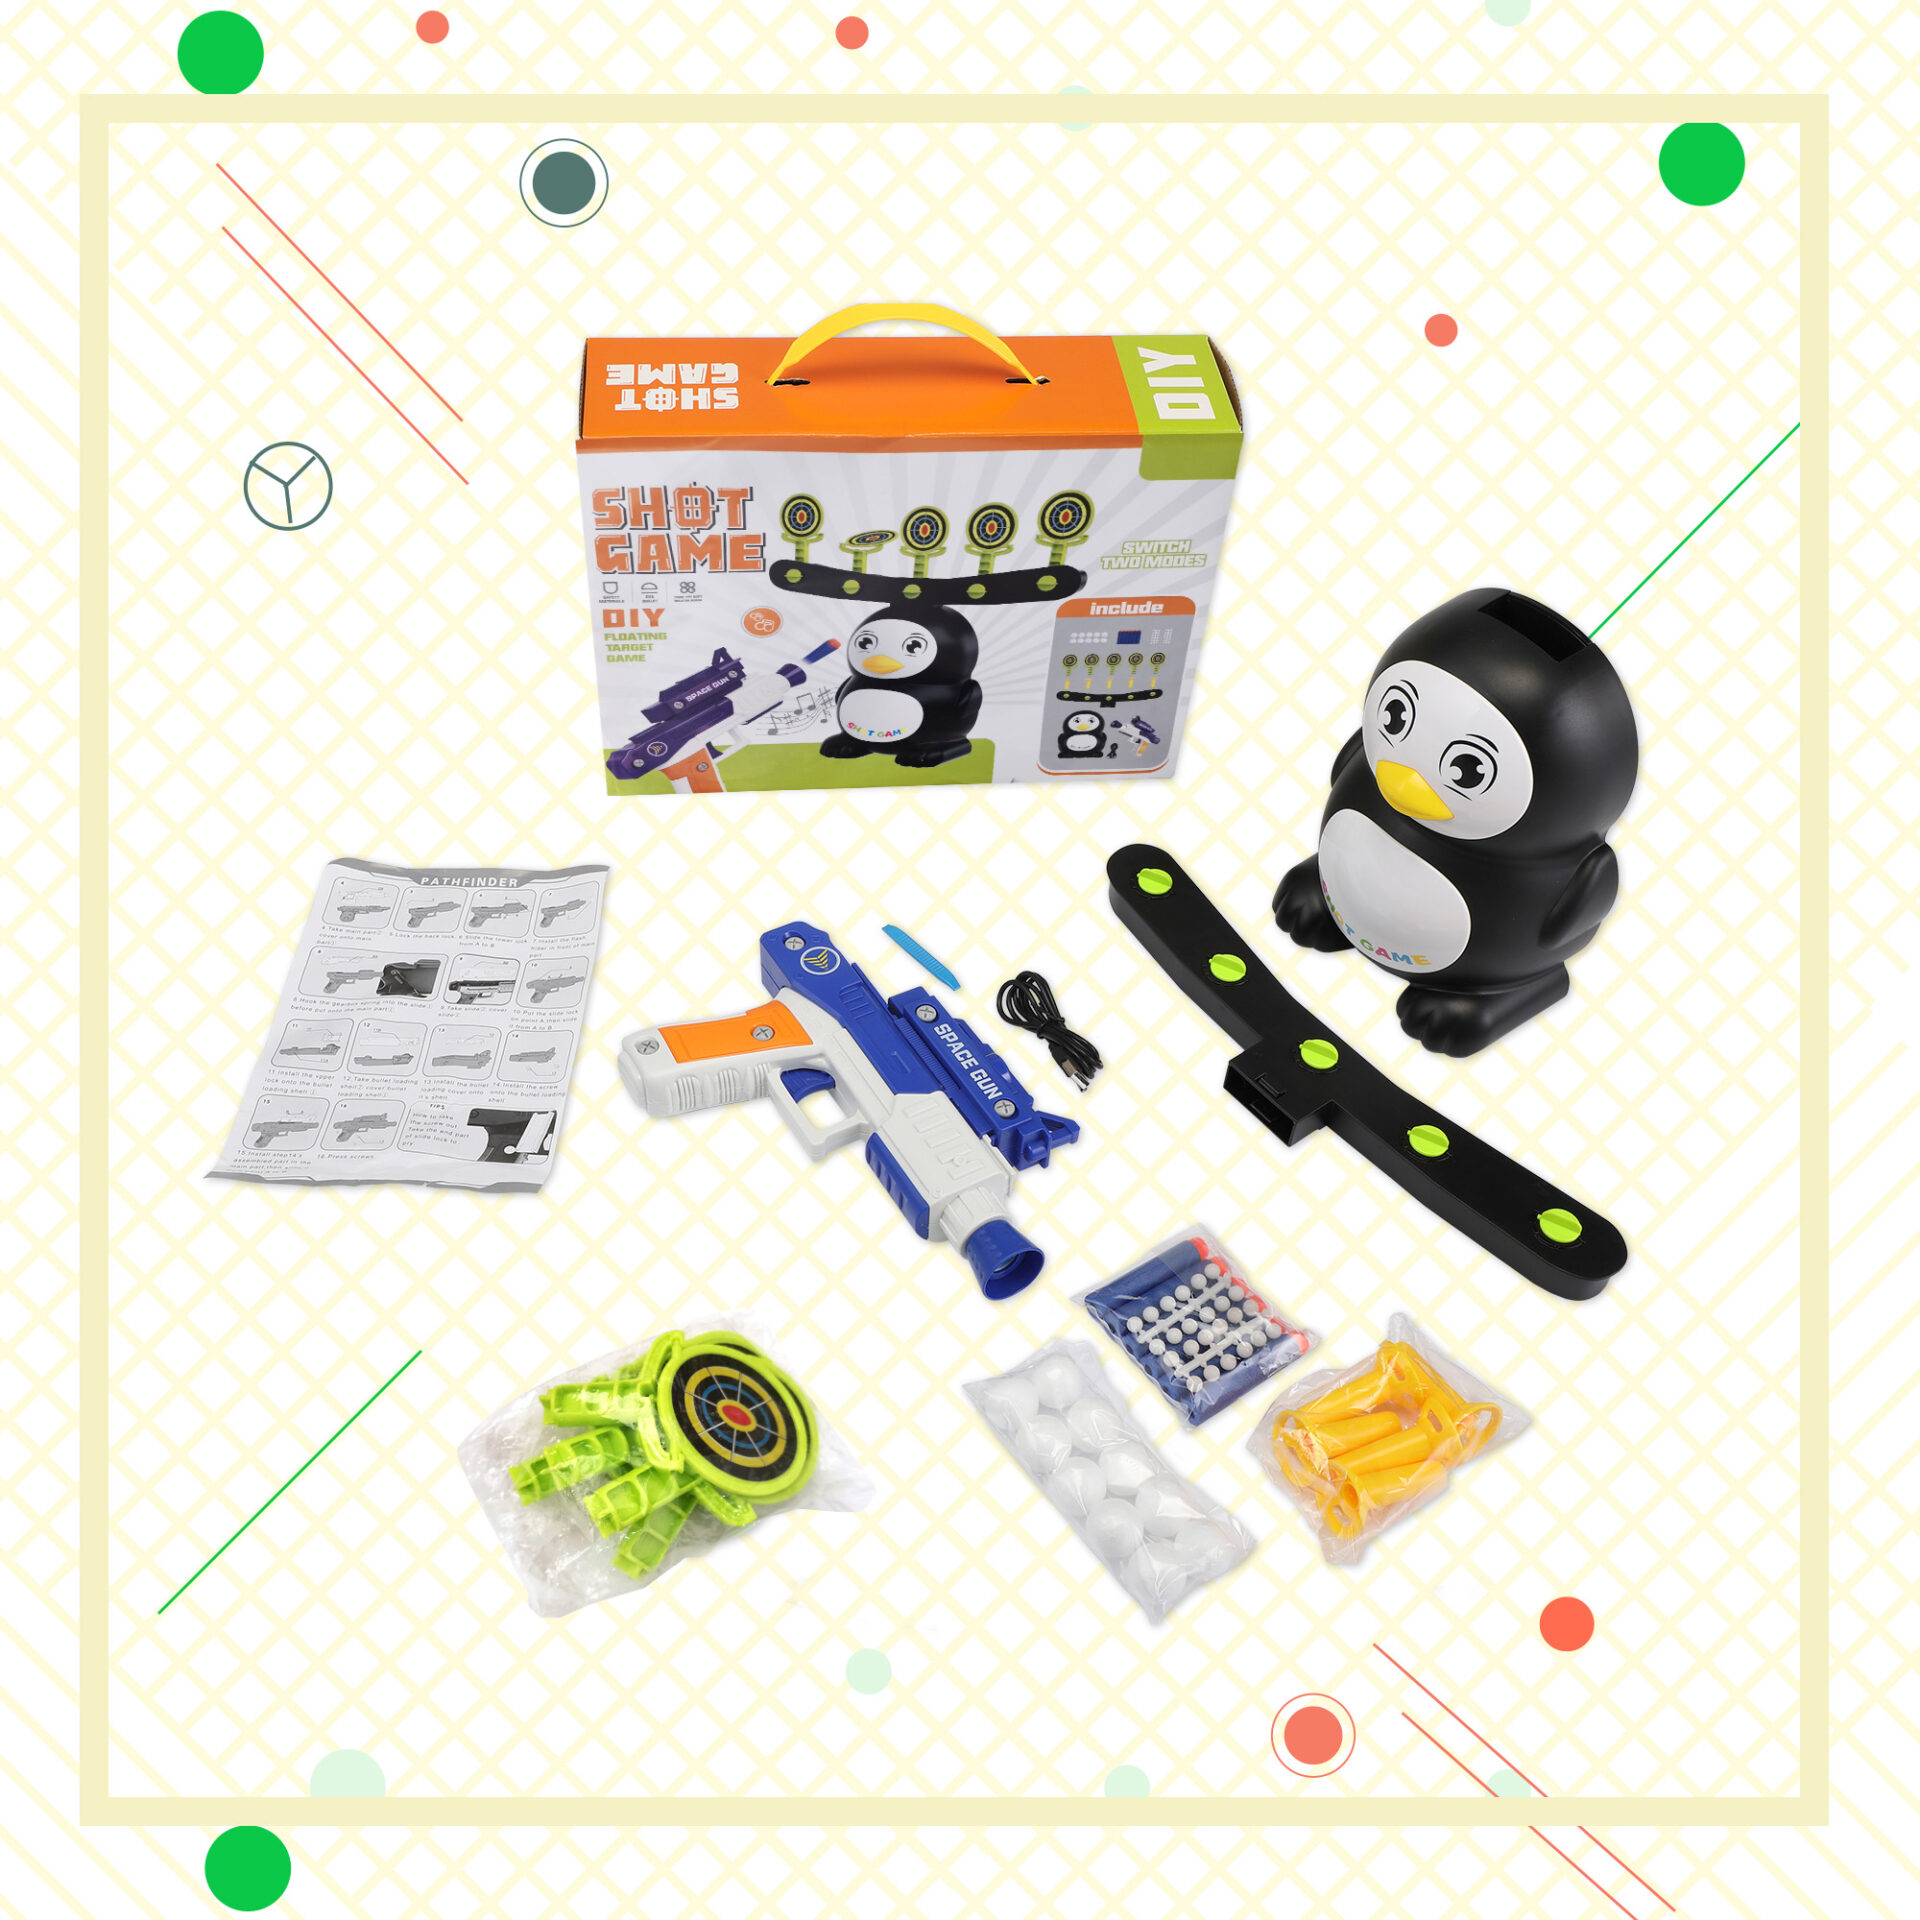 Penguin Shooting Games Target Practice Toys for Kids 8